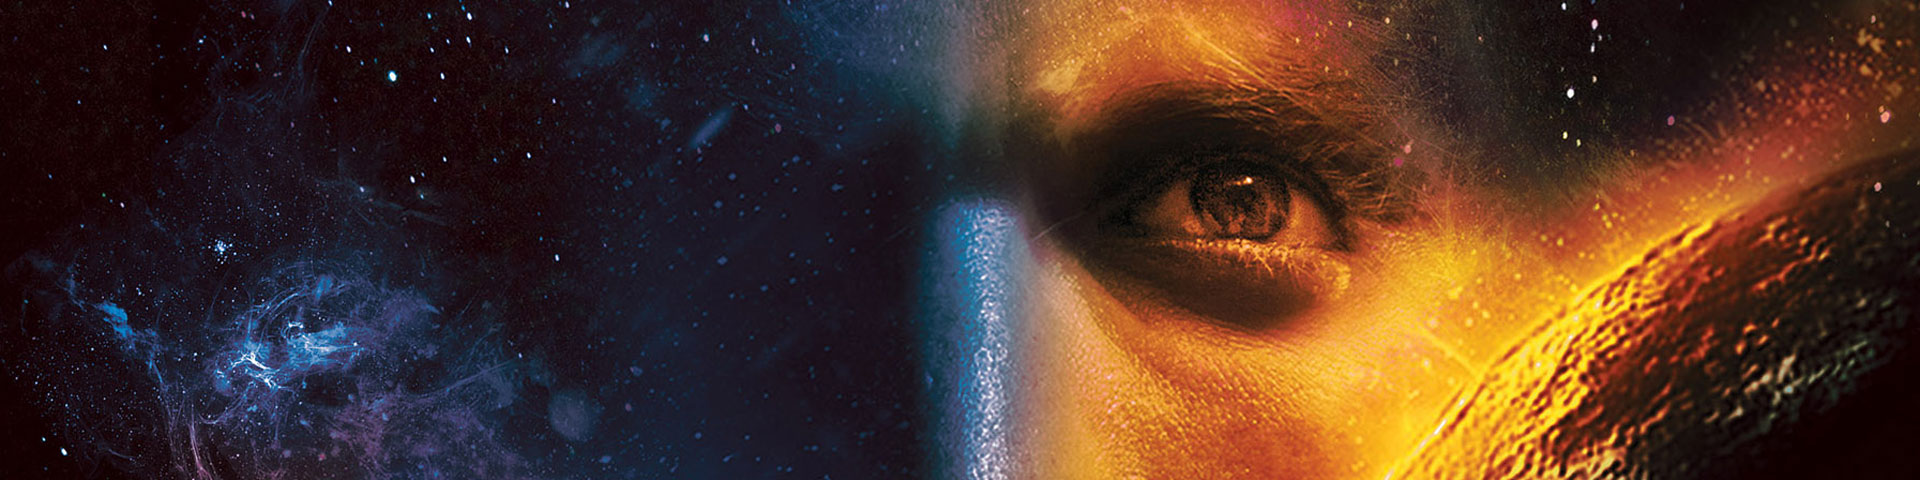 A mans face is superimposed over blue stars and a red/orange planet.